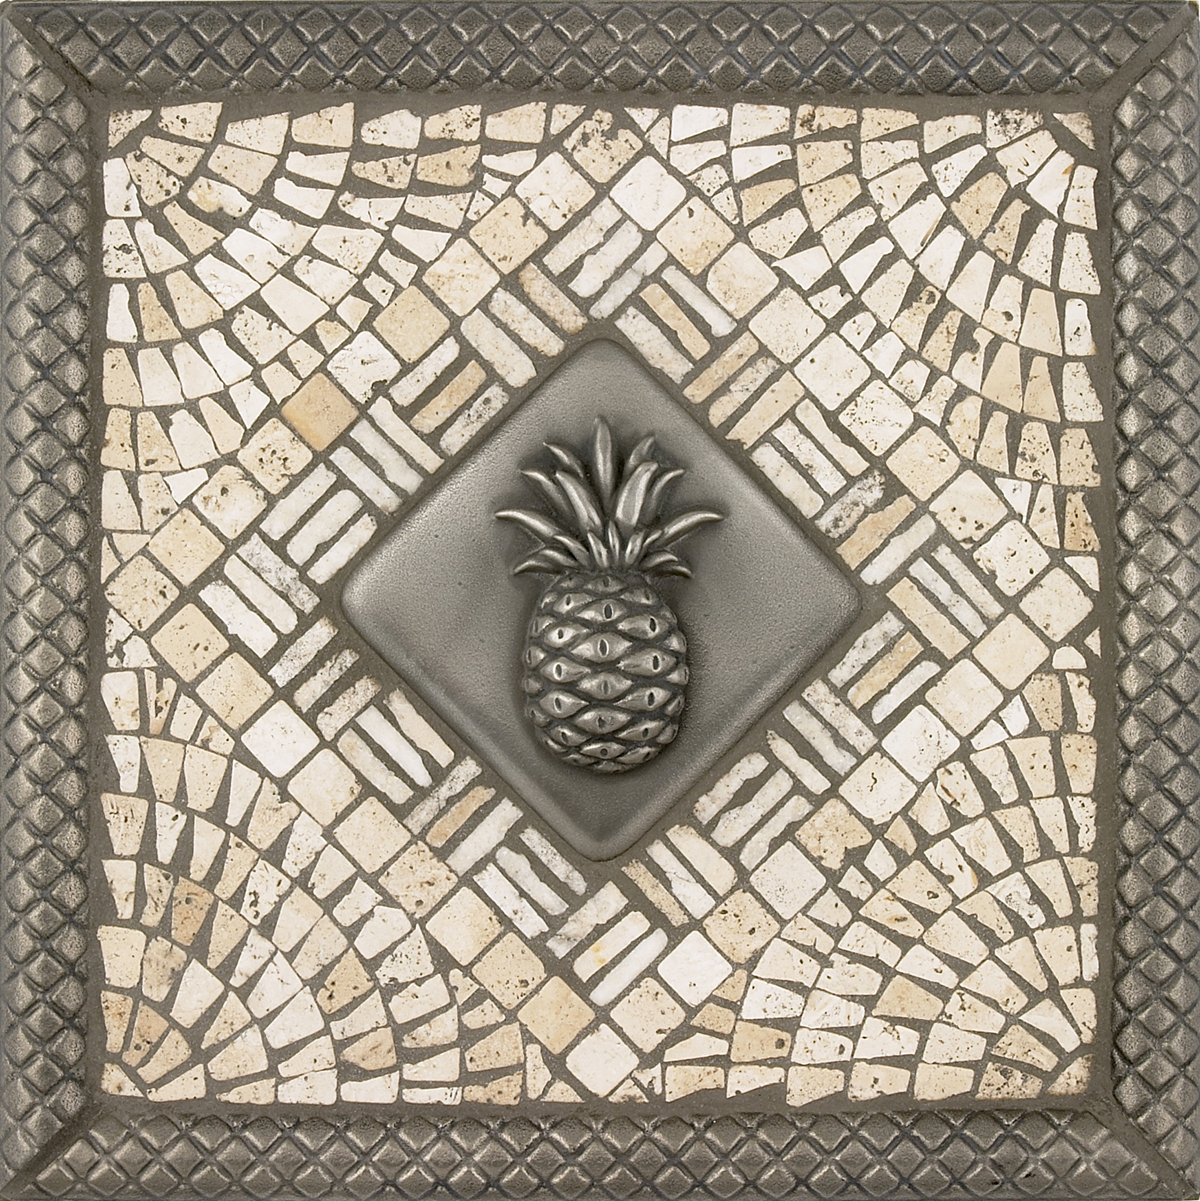 Metal pineapple mosaic tile backsplash medallion 12 inches pineapple mosaic tile backsplash medallion 12 inches dailygadgetfo Image collections